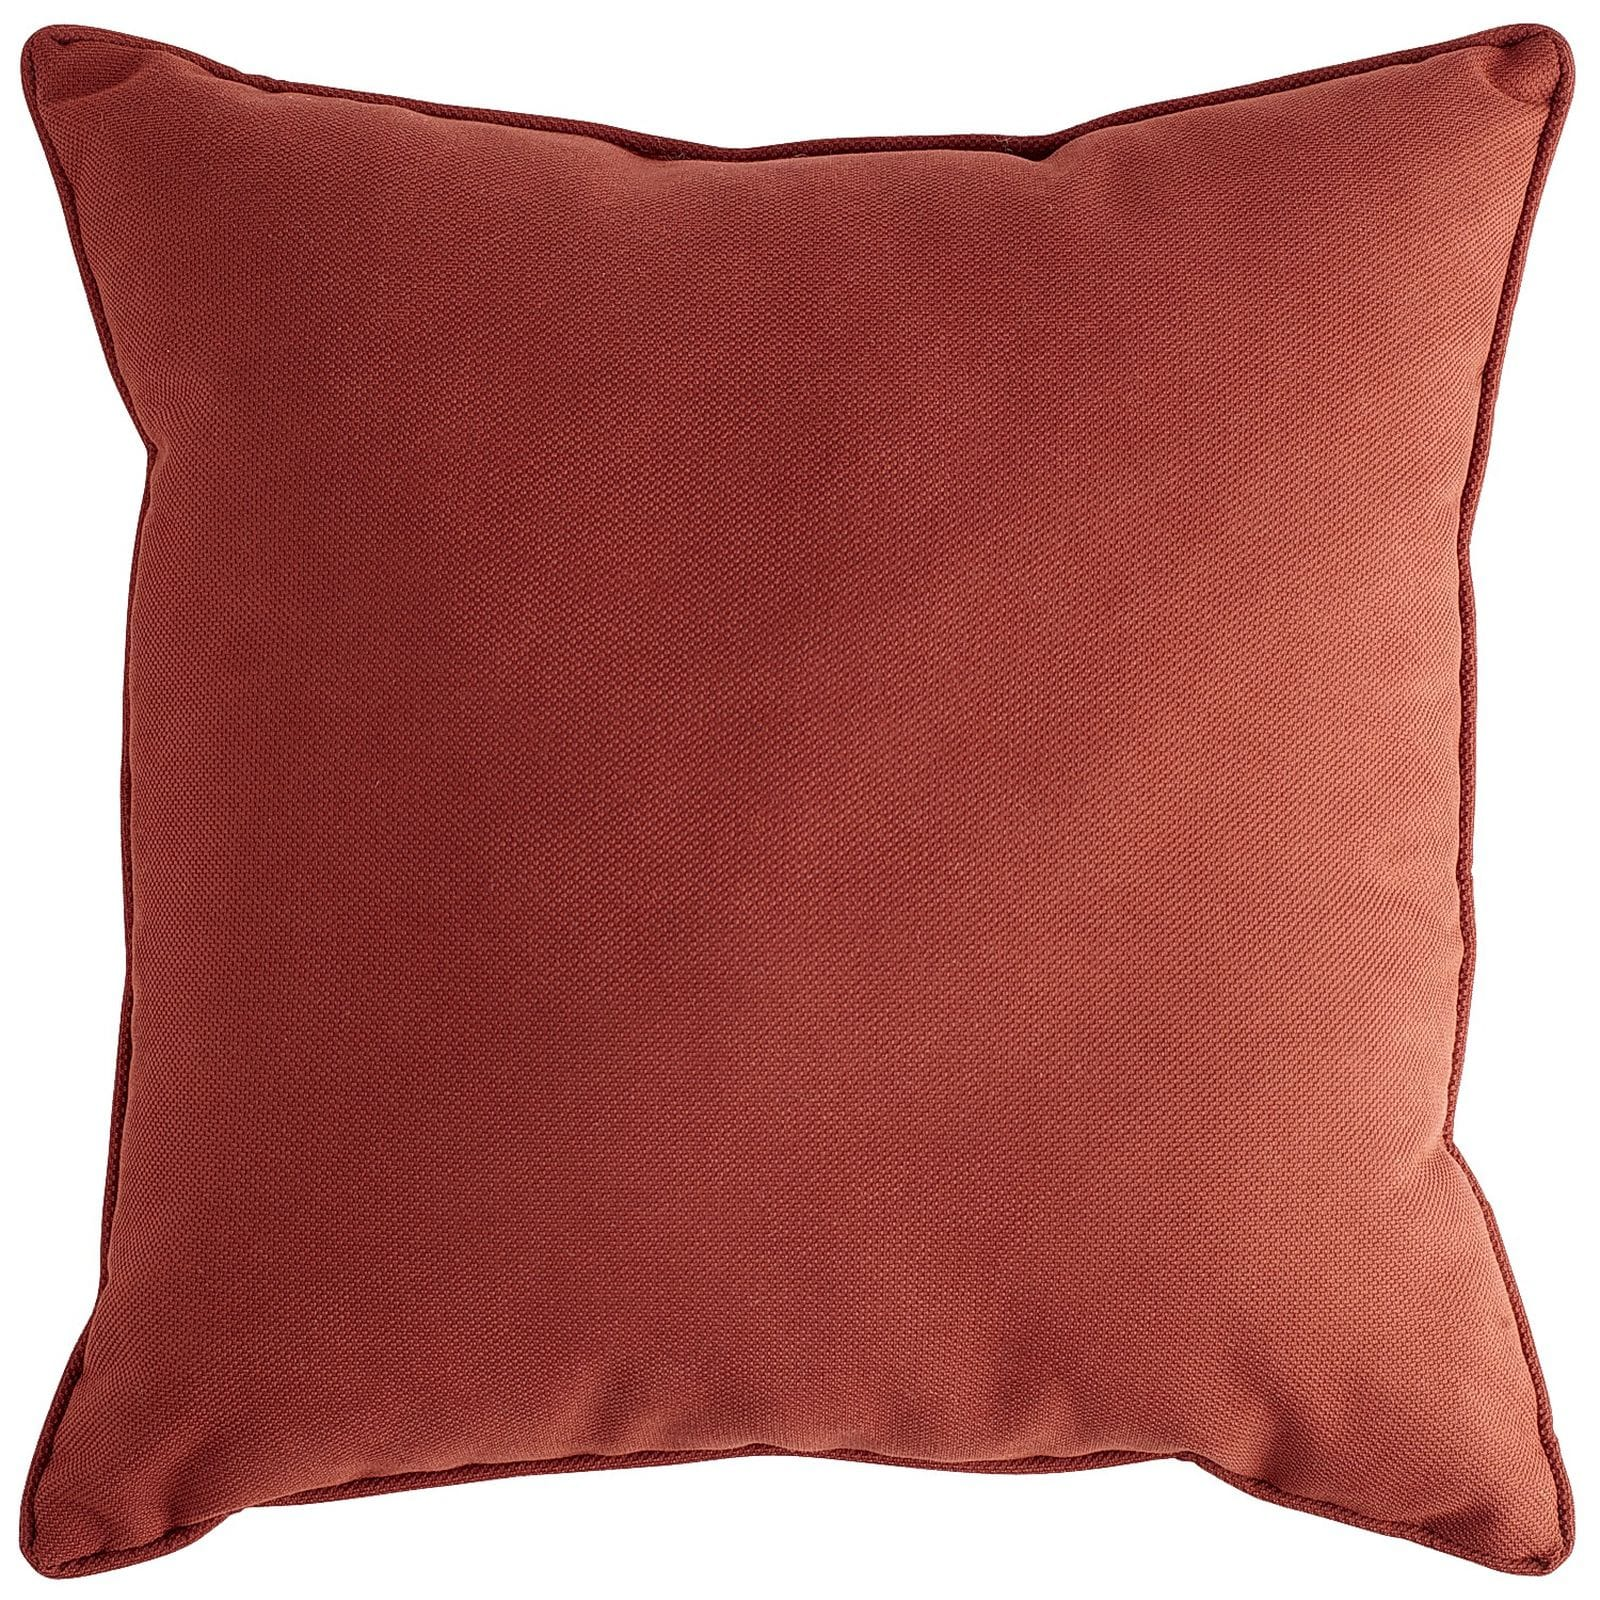 Calliope Spice Pillow